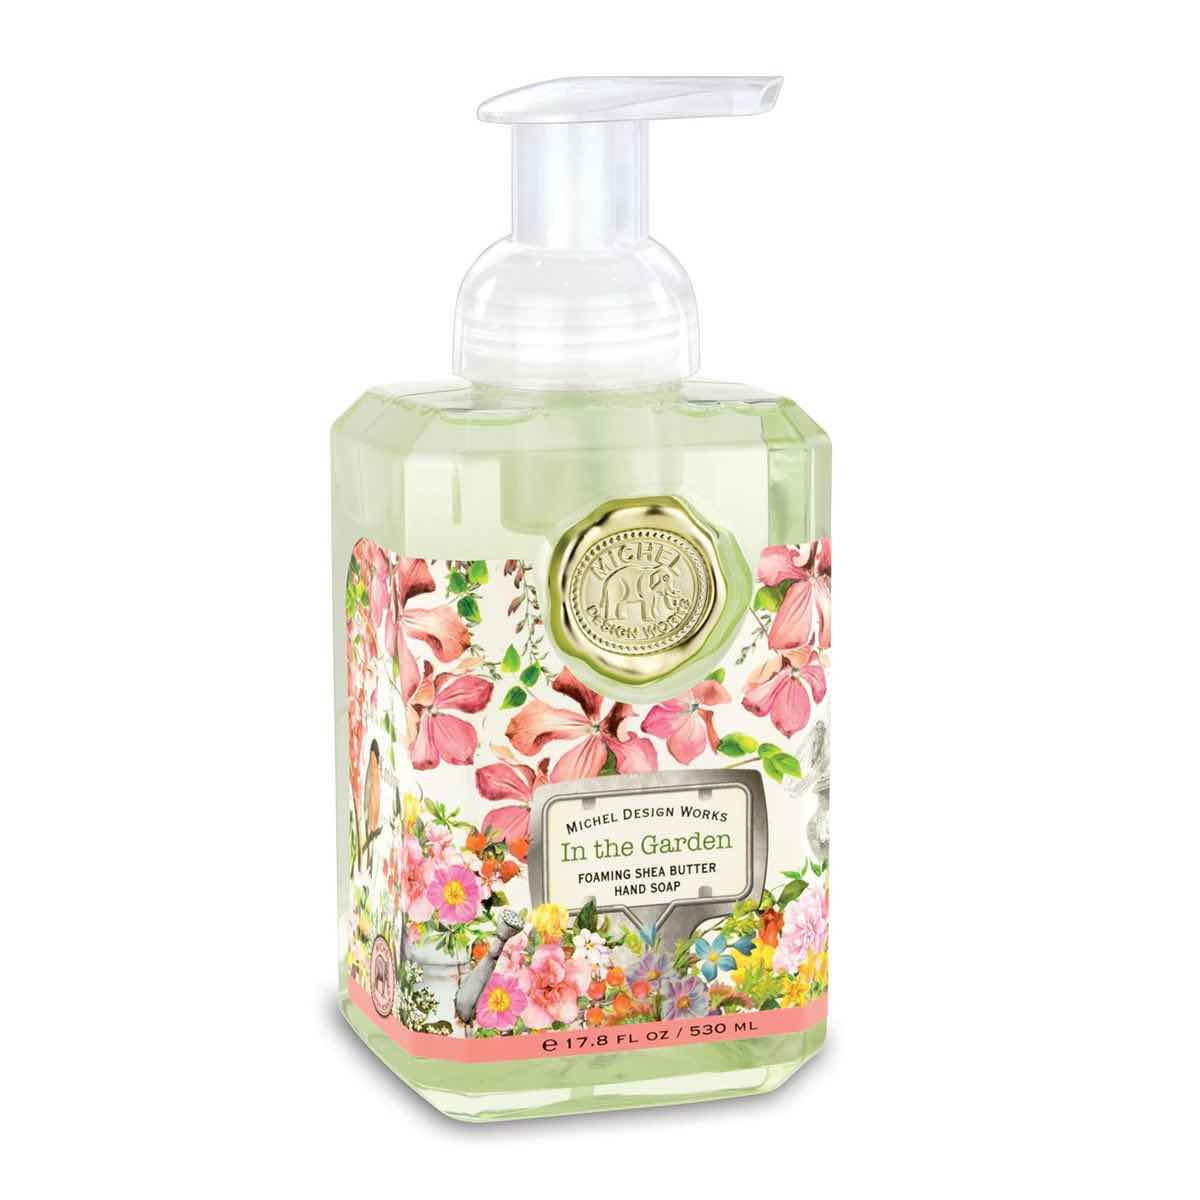 Michel Design Works Foaming Soap | In the Garden